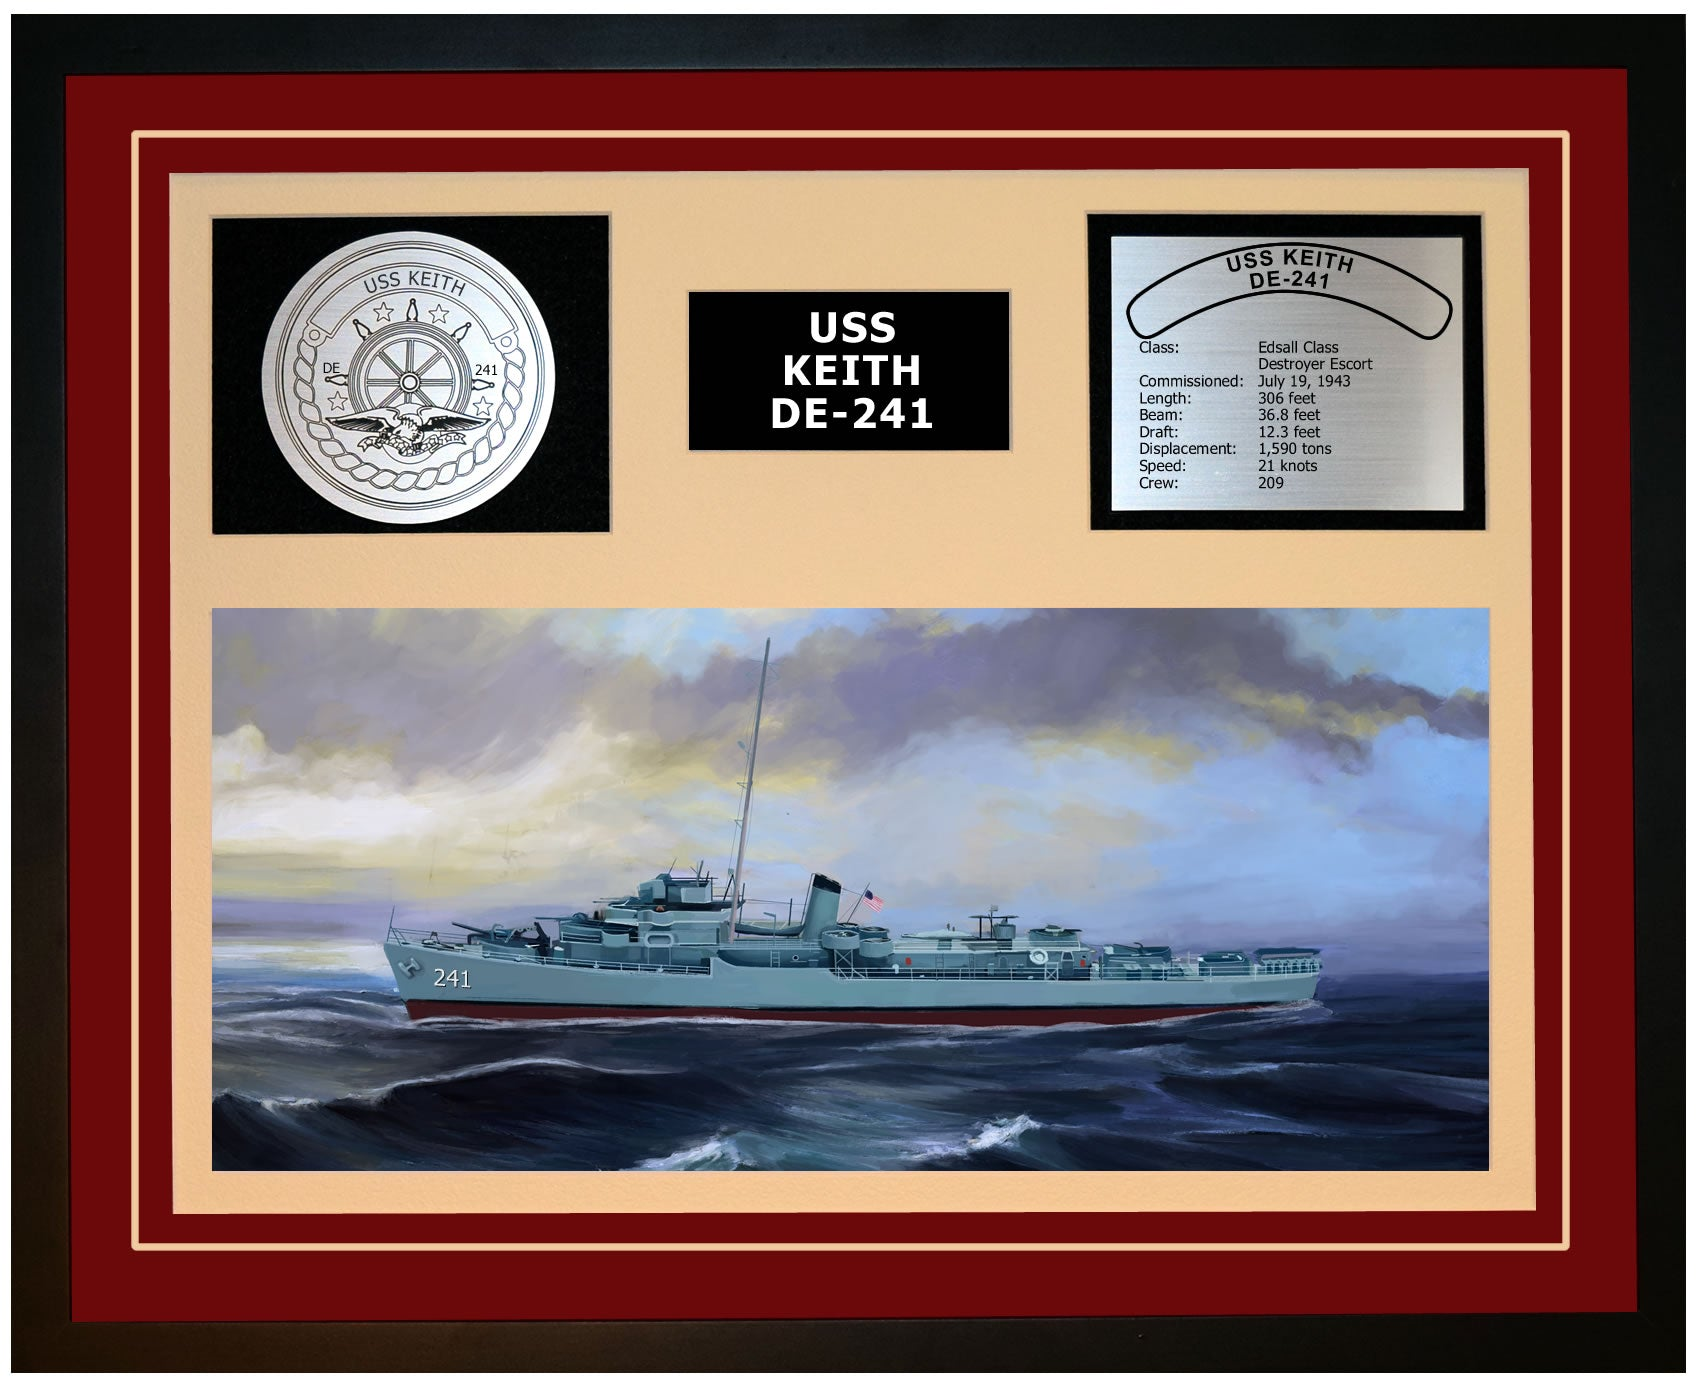 USS KEITH DE-241 Framed Navy Ship Display Burgundy